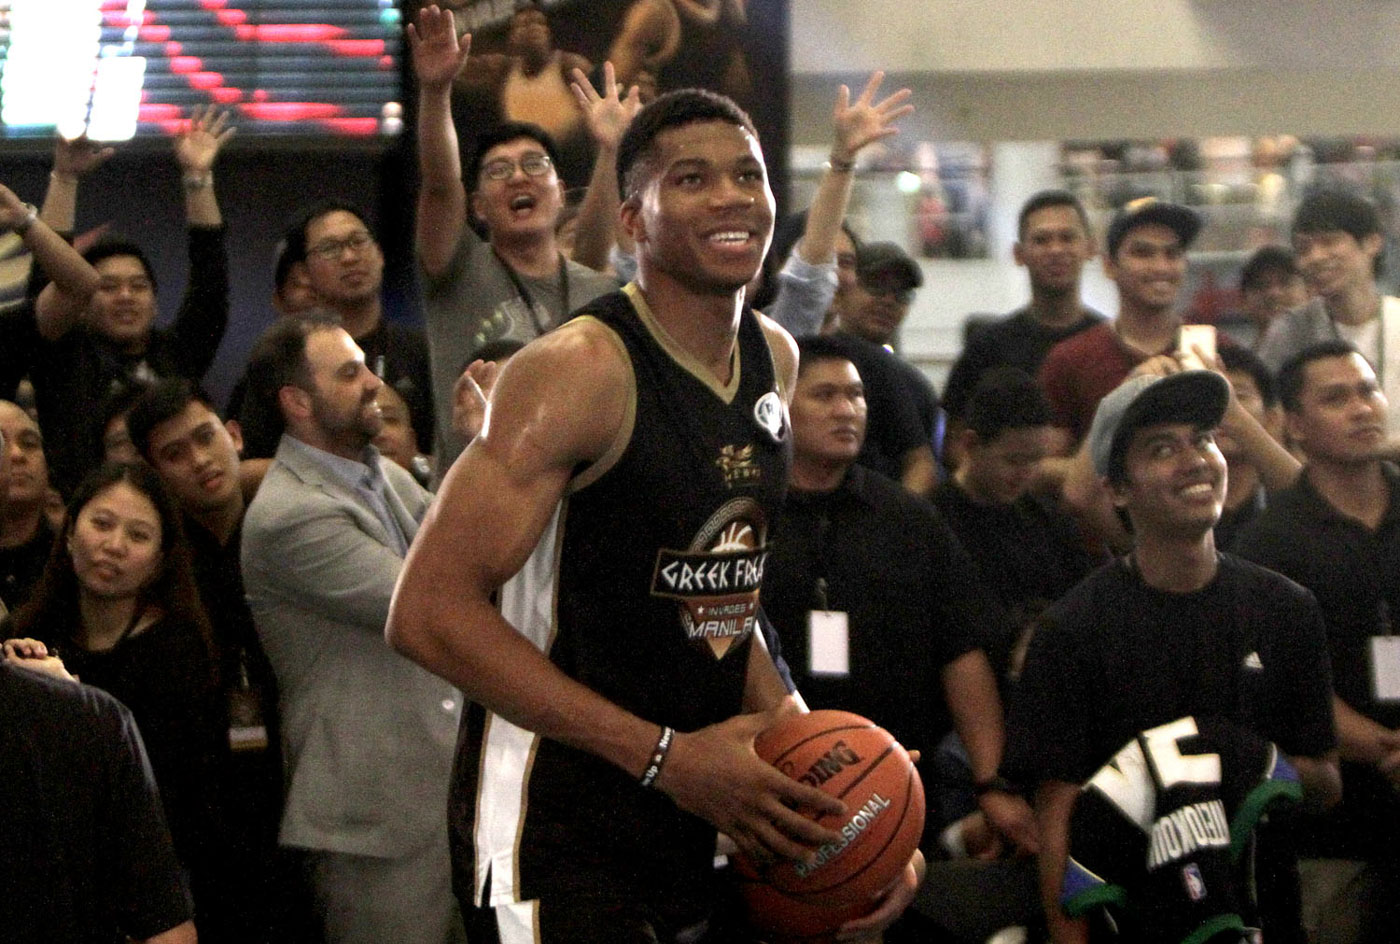 Giannis Antetokounmpo's NBA journey led him to 'see world a lot differently'